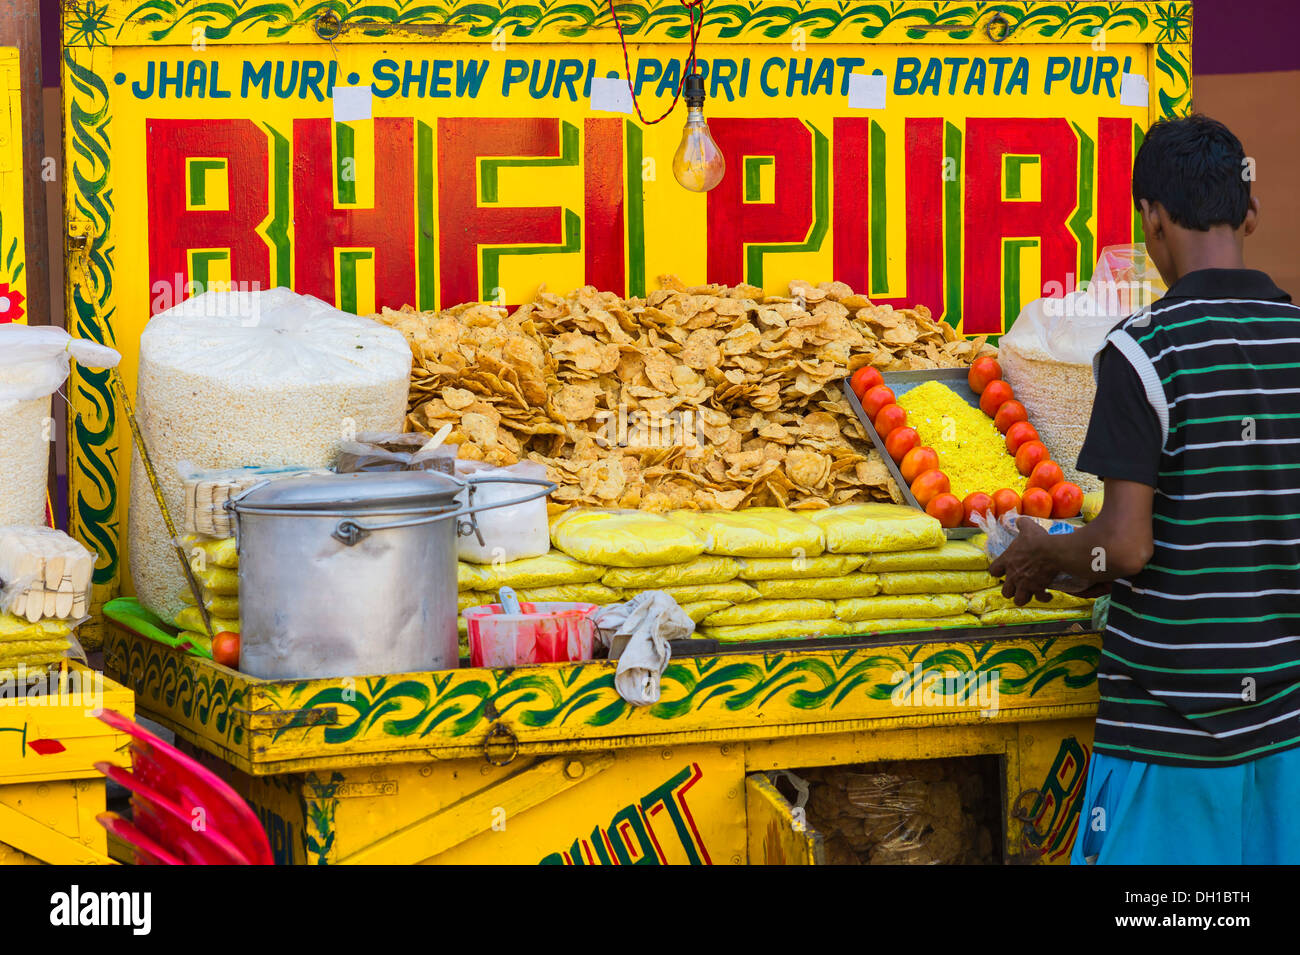 A small roadside stall sells Bhel Puri, a popular local snack, during the Hindu festival of Durga Puja in Kolkata, India. - Stock Image